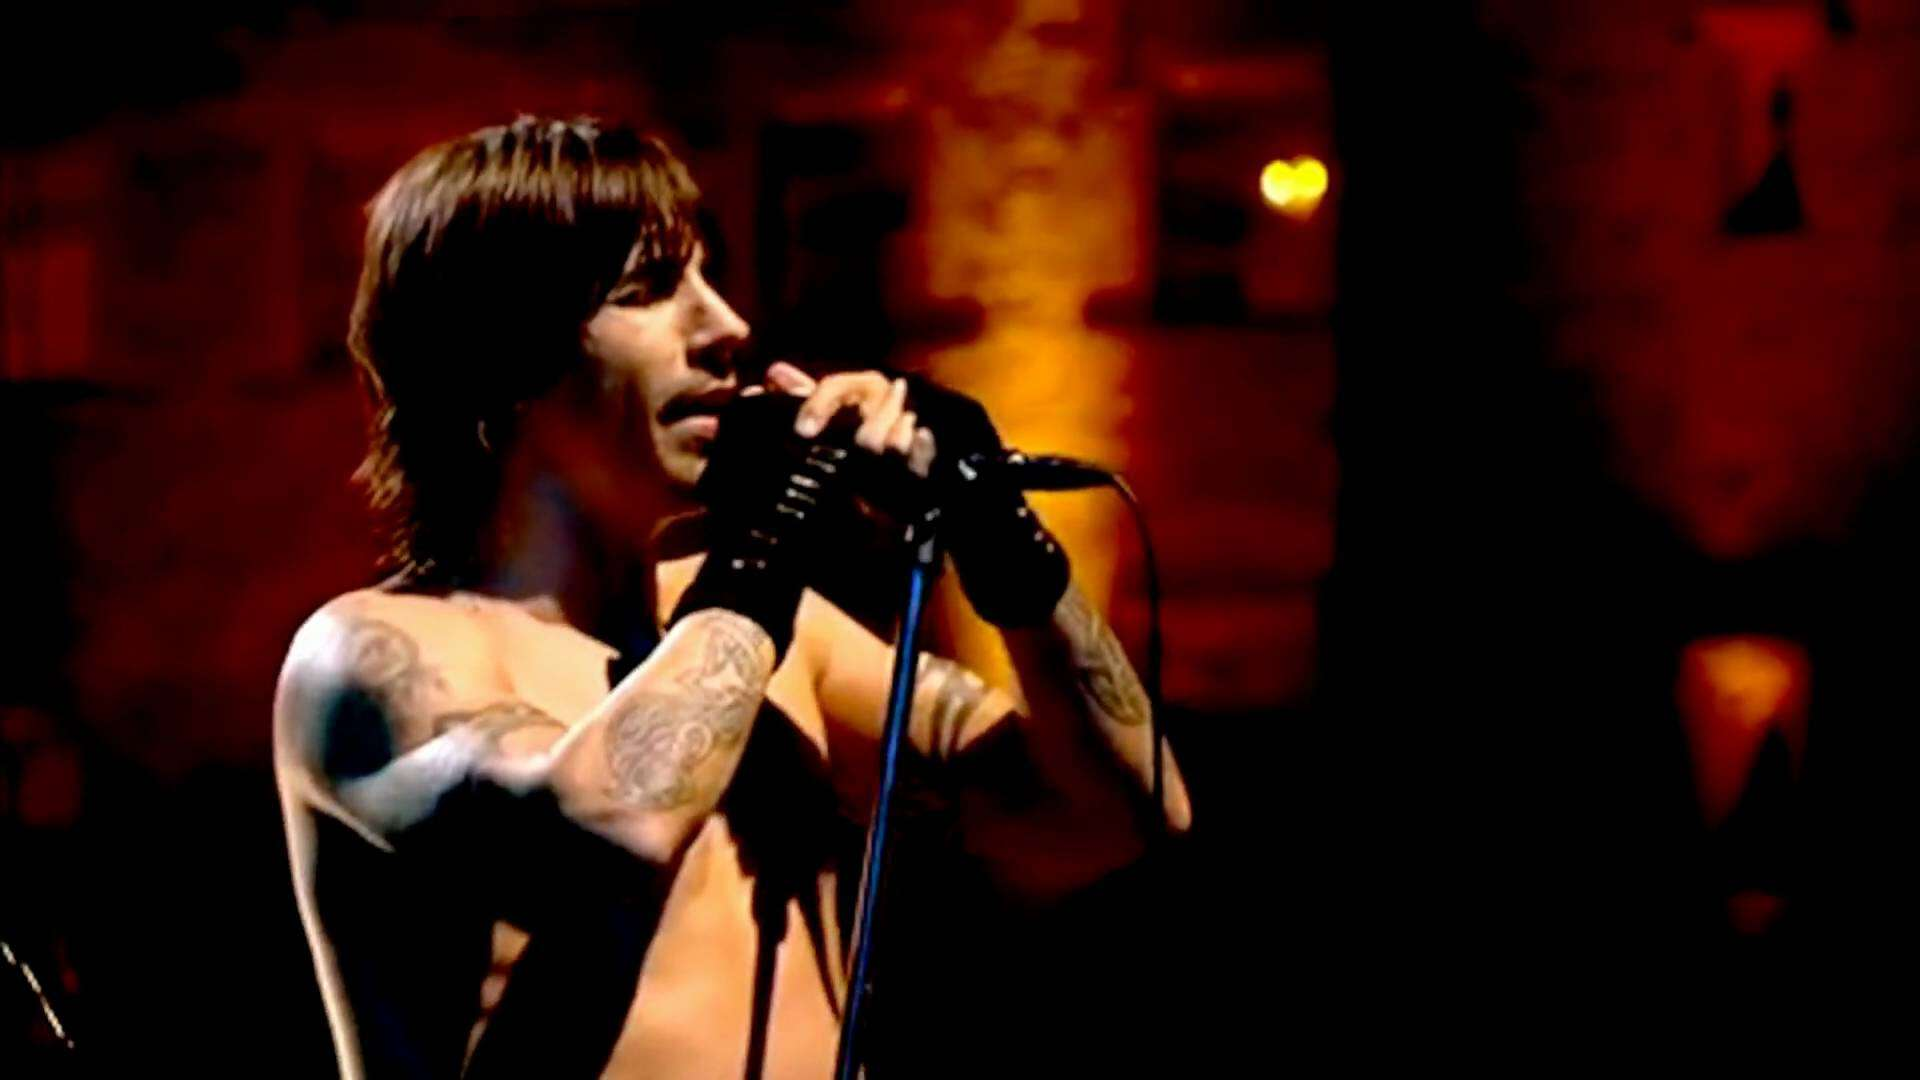 Red Hot Chili Peppers - Under the Bridge (Live at Slane Castle) photo